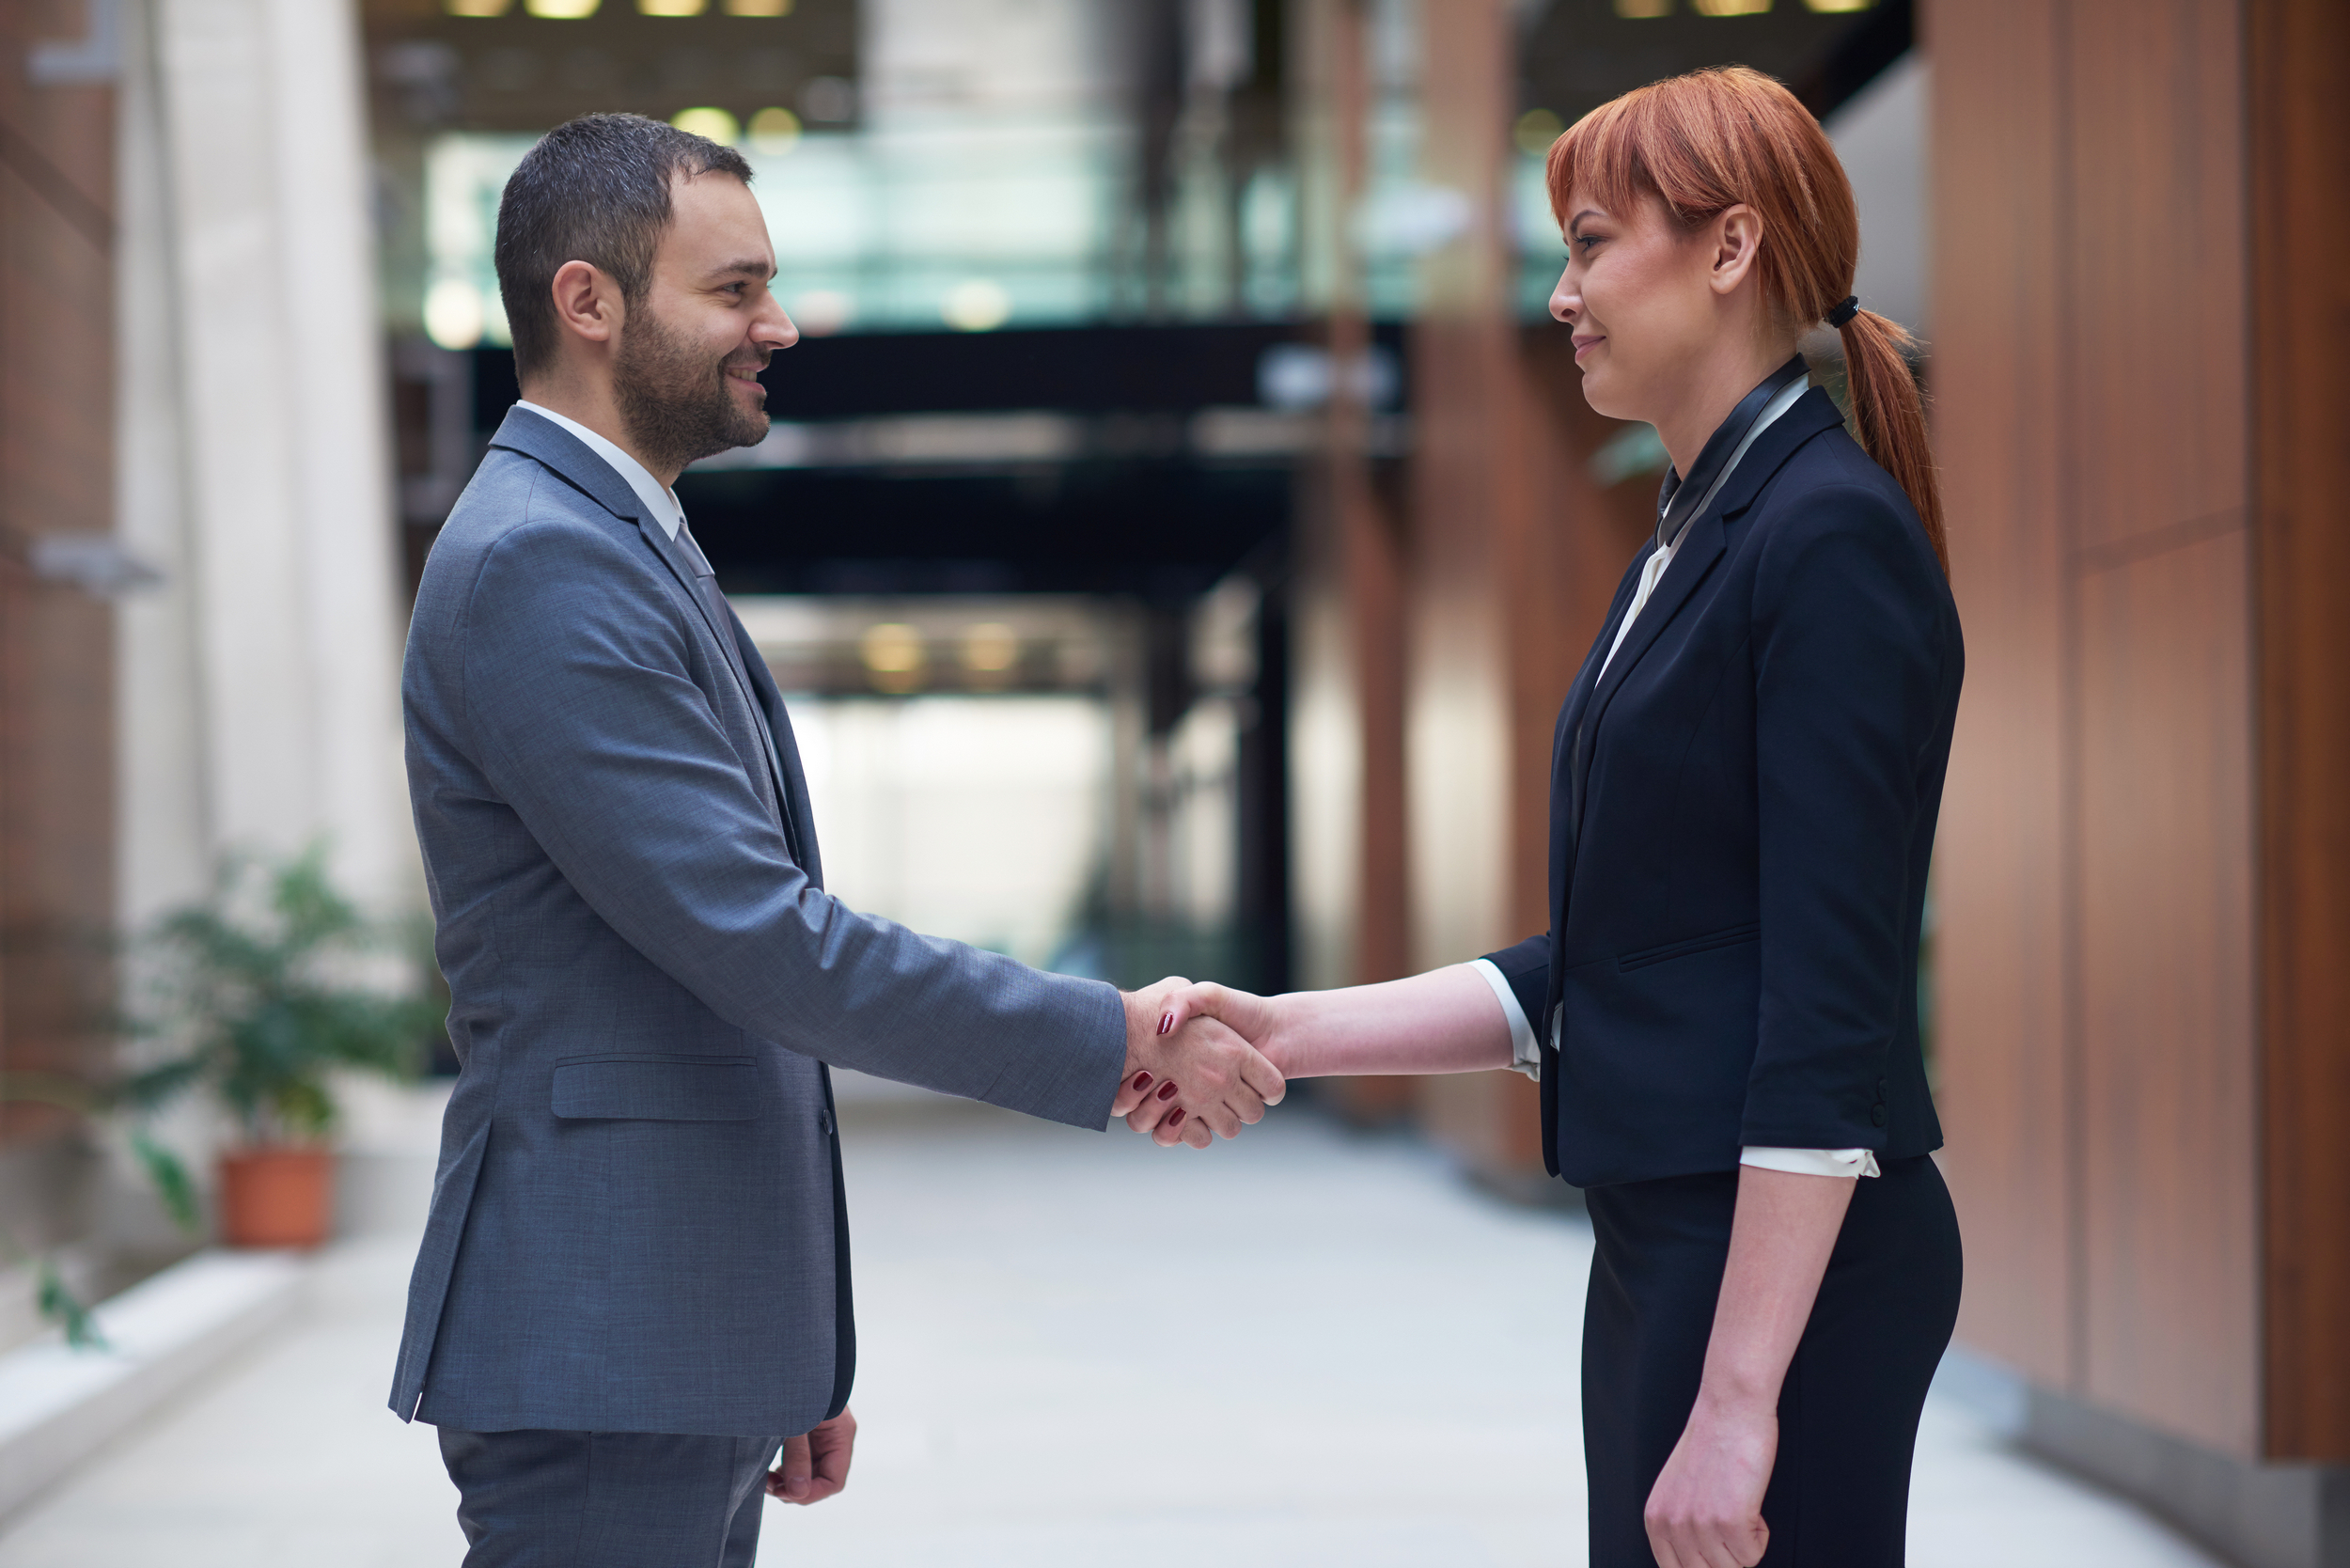 partnership concept with business man and woman hand shake and take agreement in modern office interior